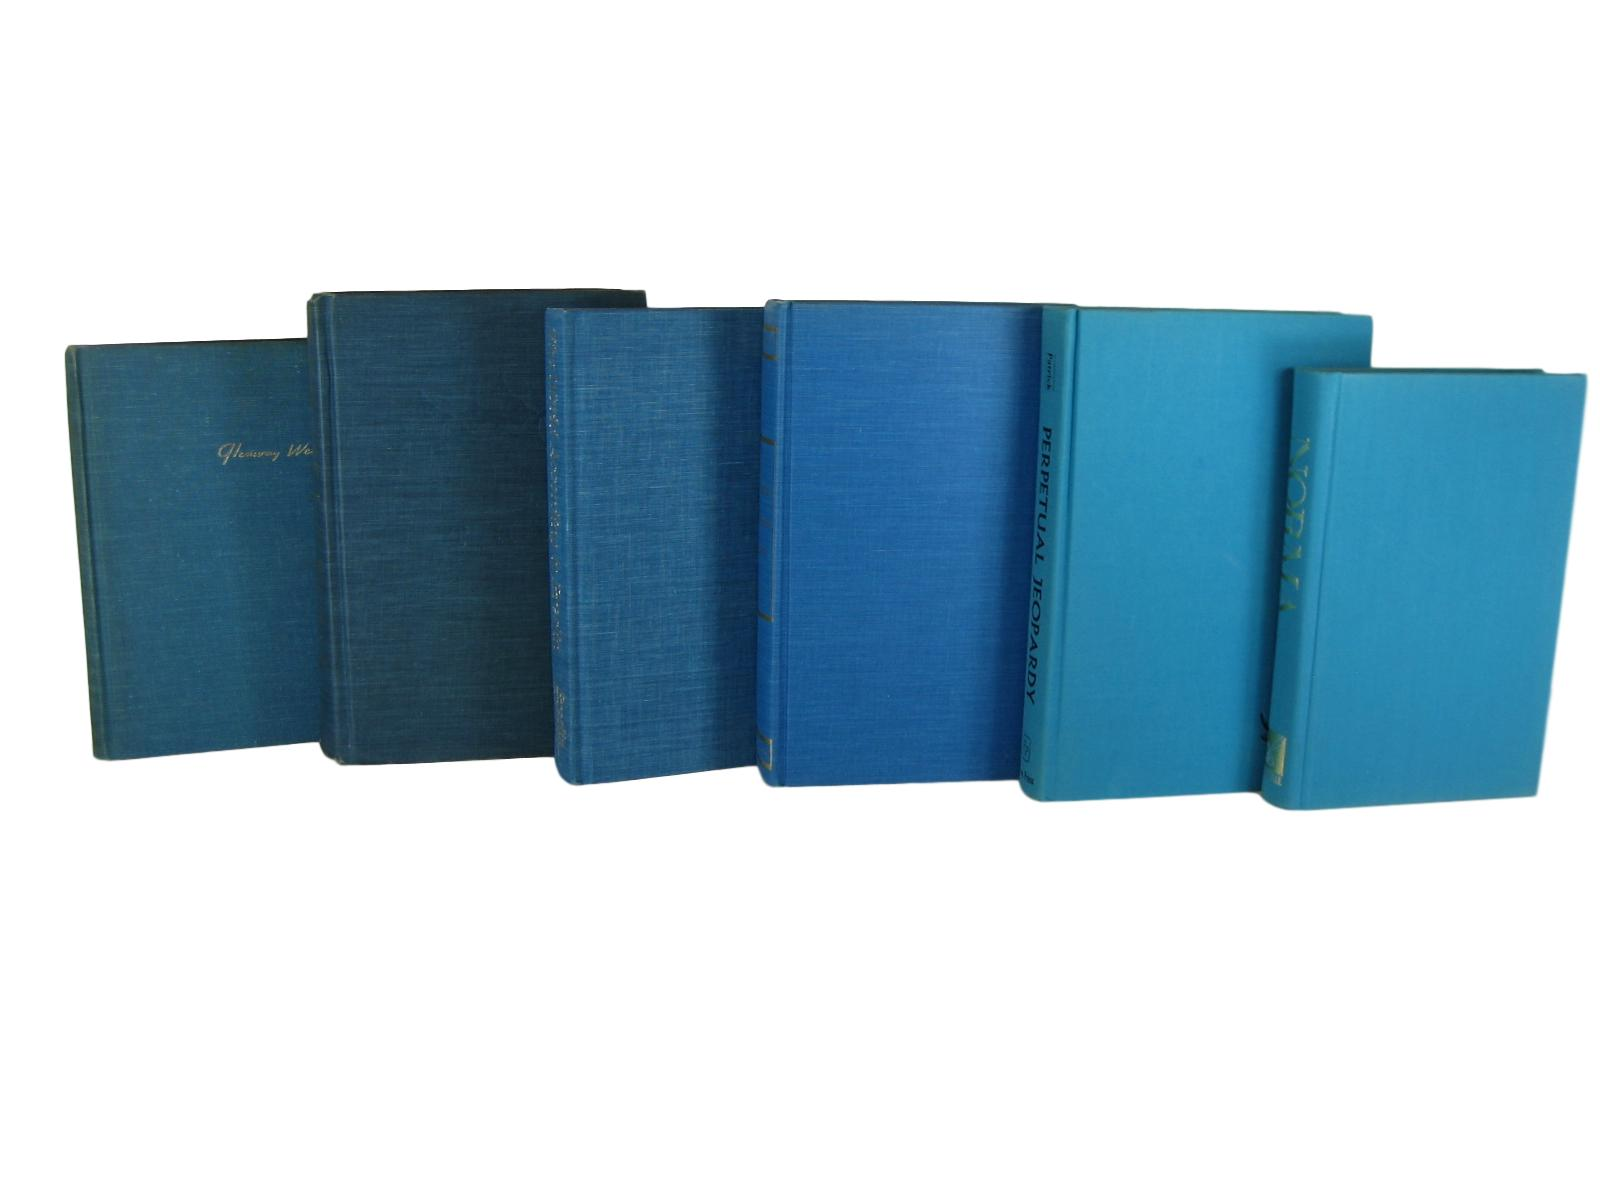 Decorative Books in Blue for  Vintage Book Home Decor, S/6 - Decades of Vintage